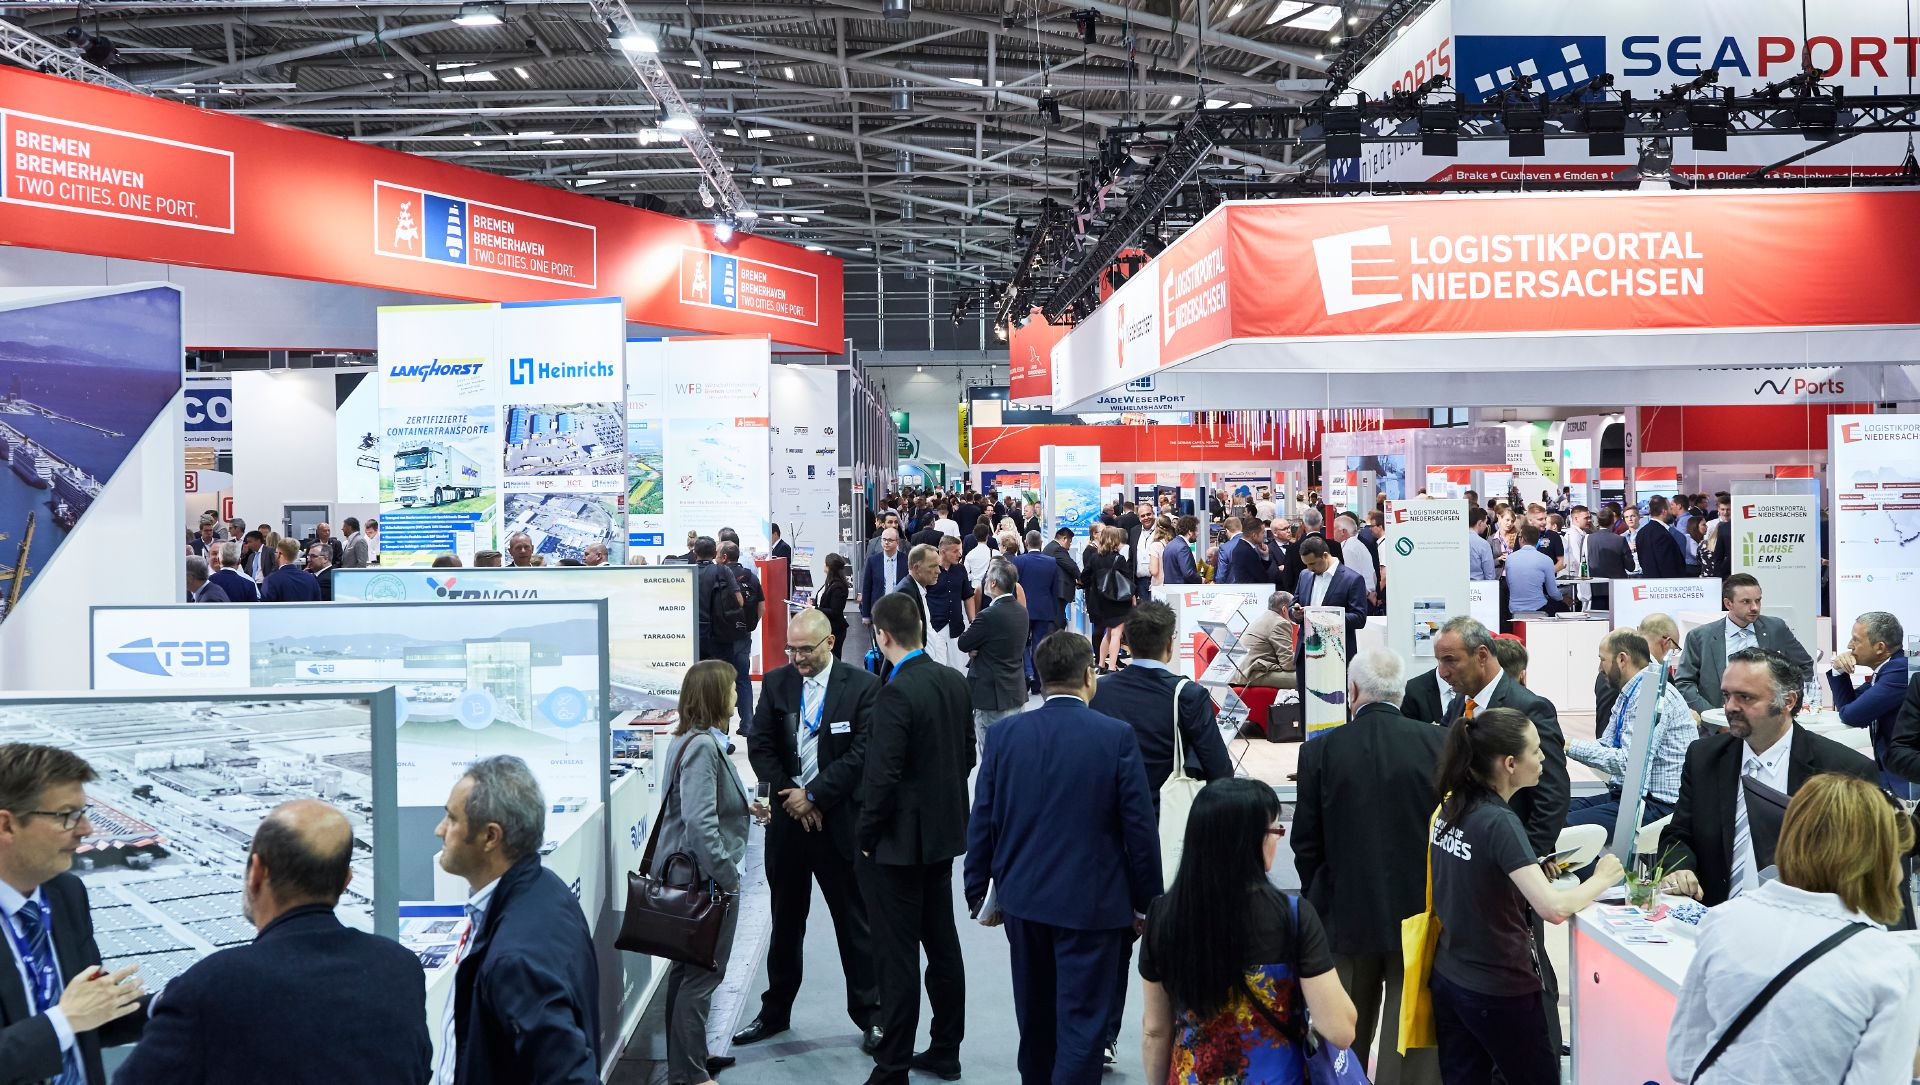 transport logistic Messestand Seaports of Niedersachsen